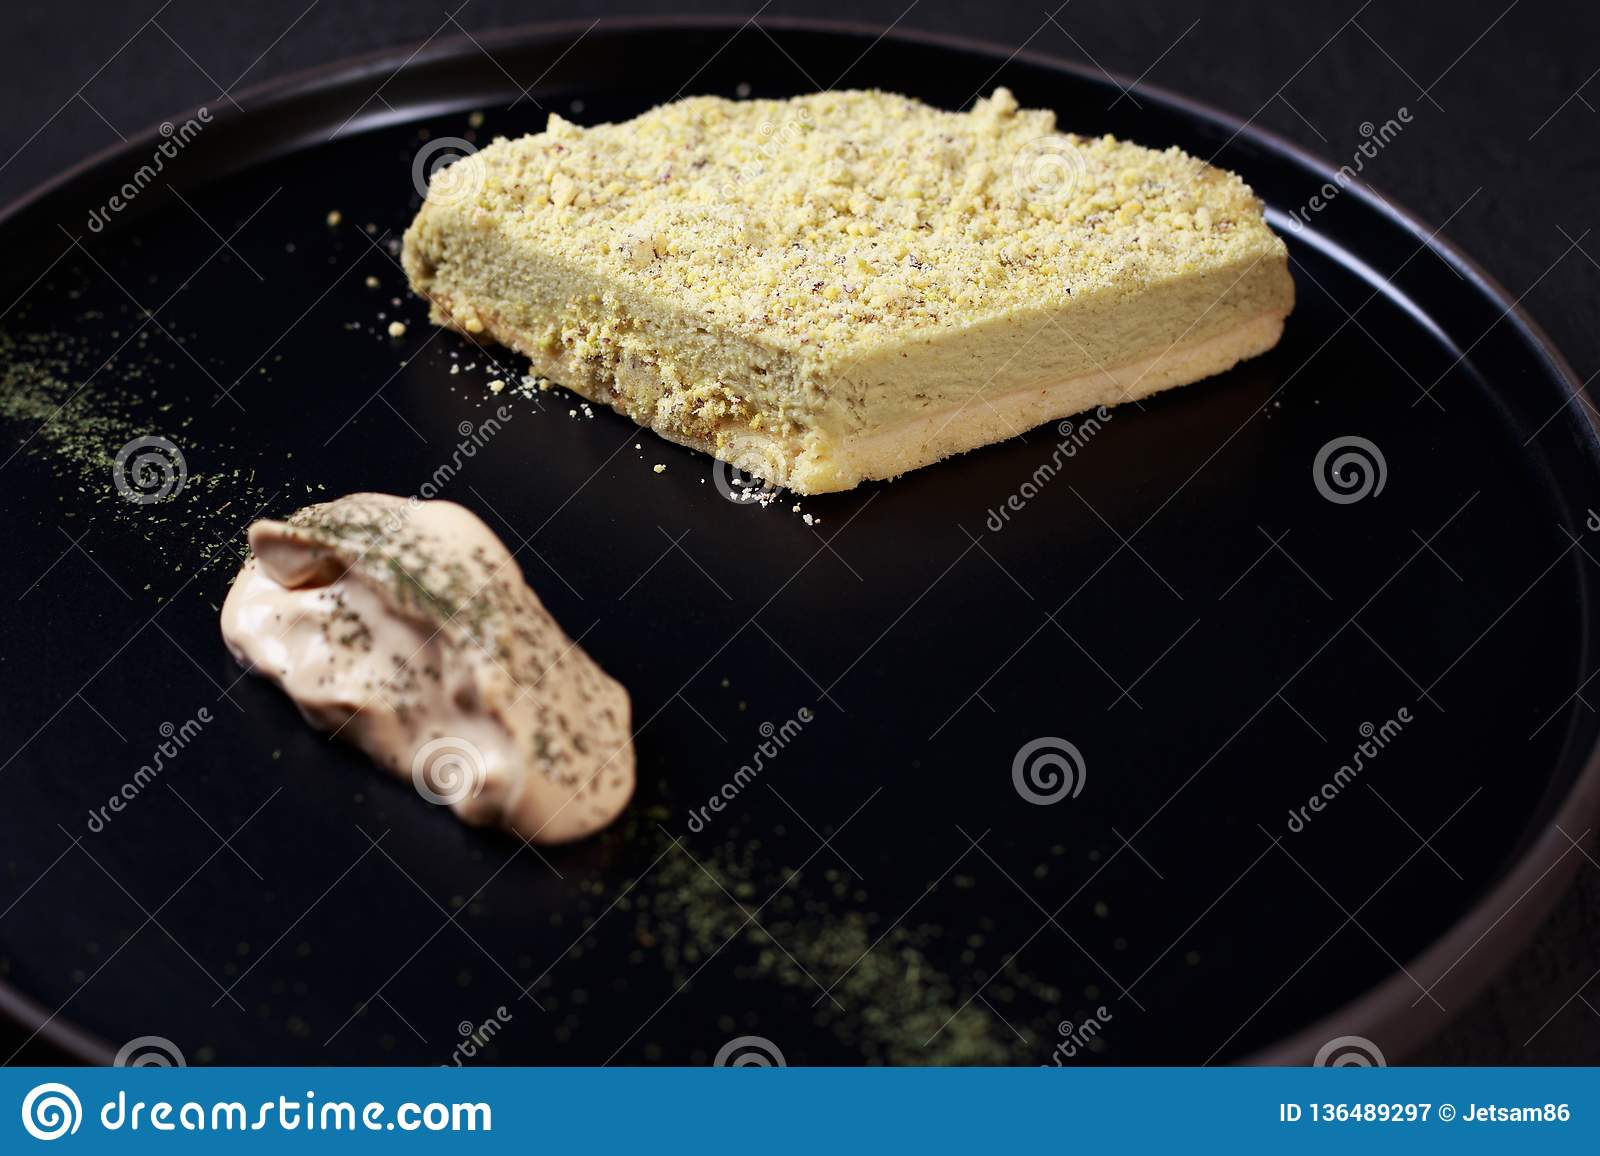 Confectionery, Professional Culinary, Cheesecake Stock Image - Image